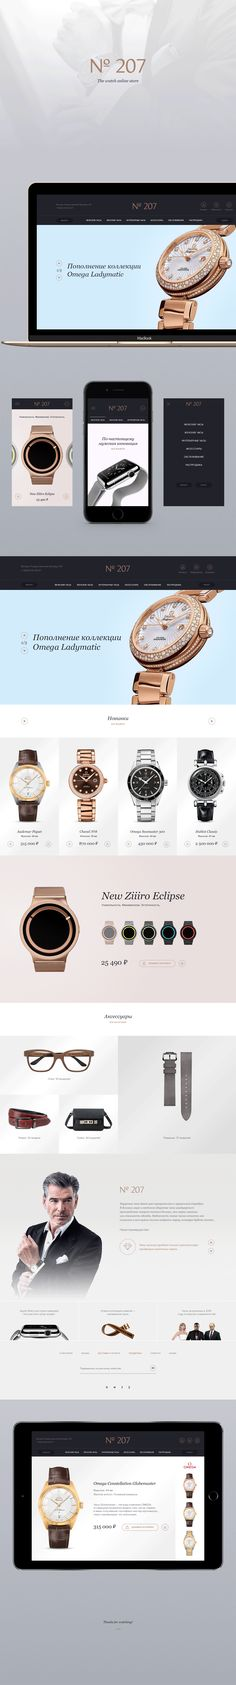 № 207. Online store concept on Behance